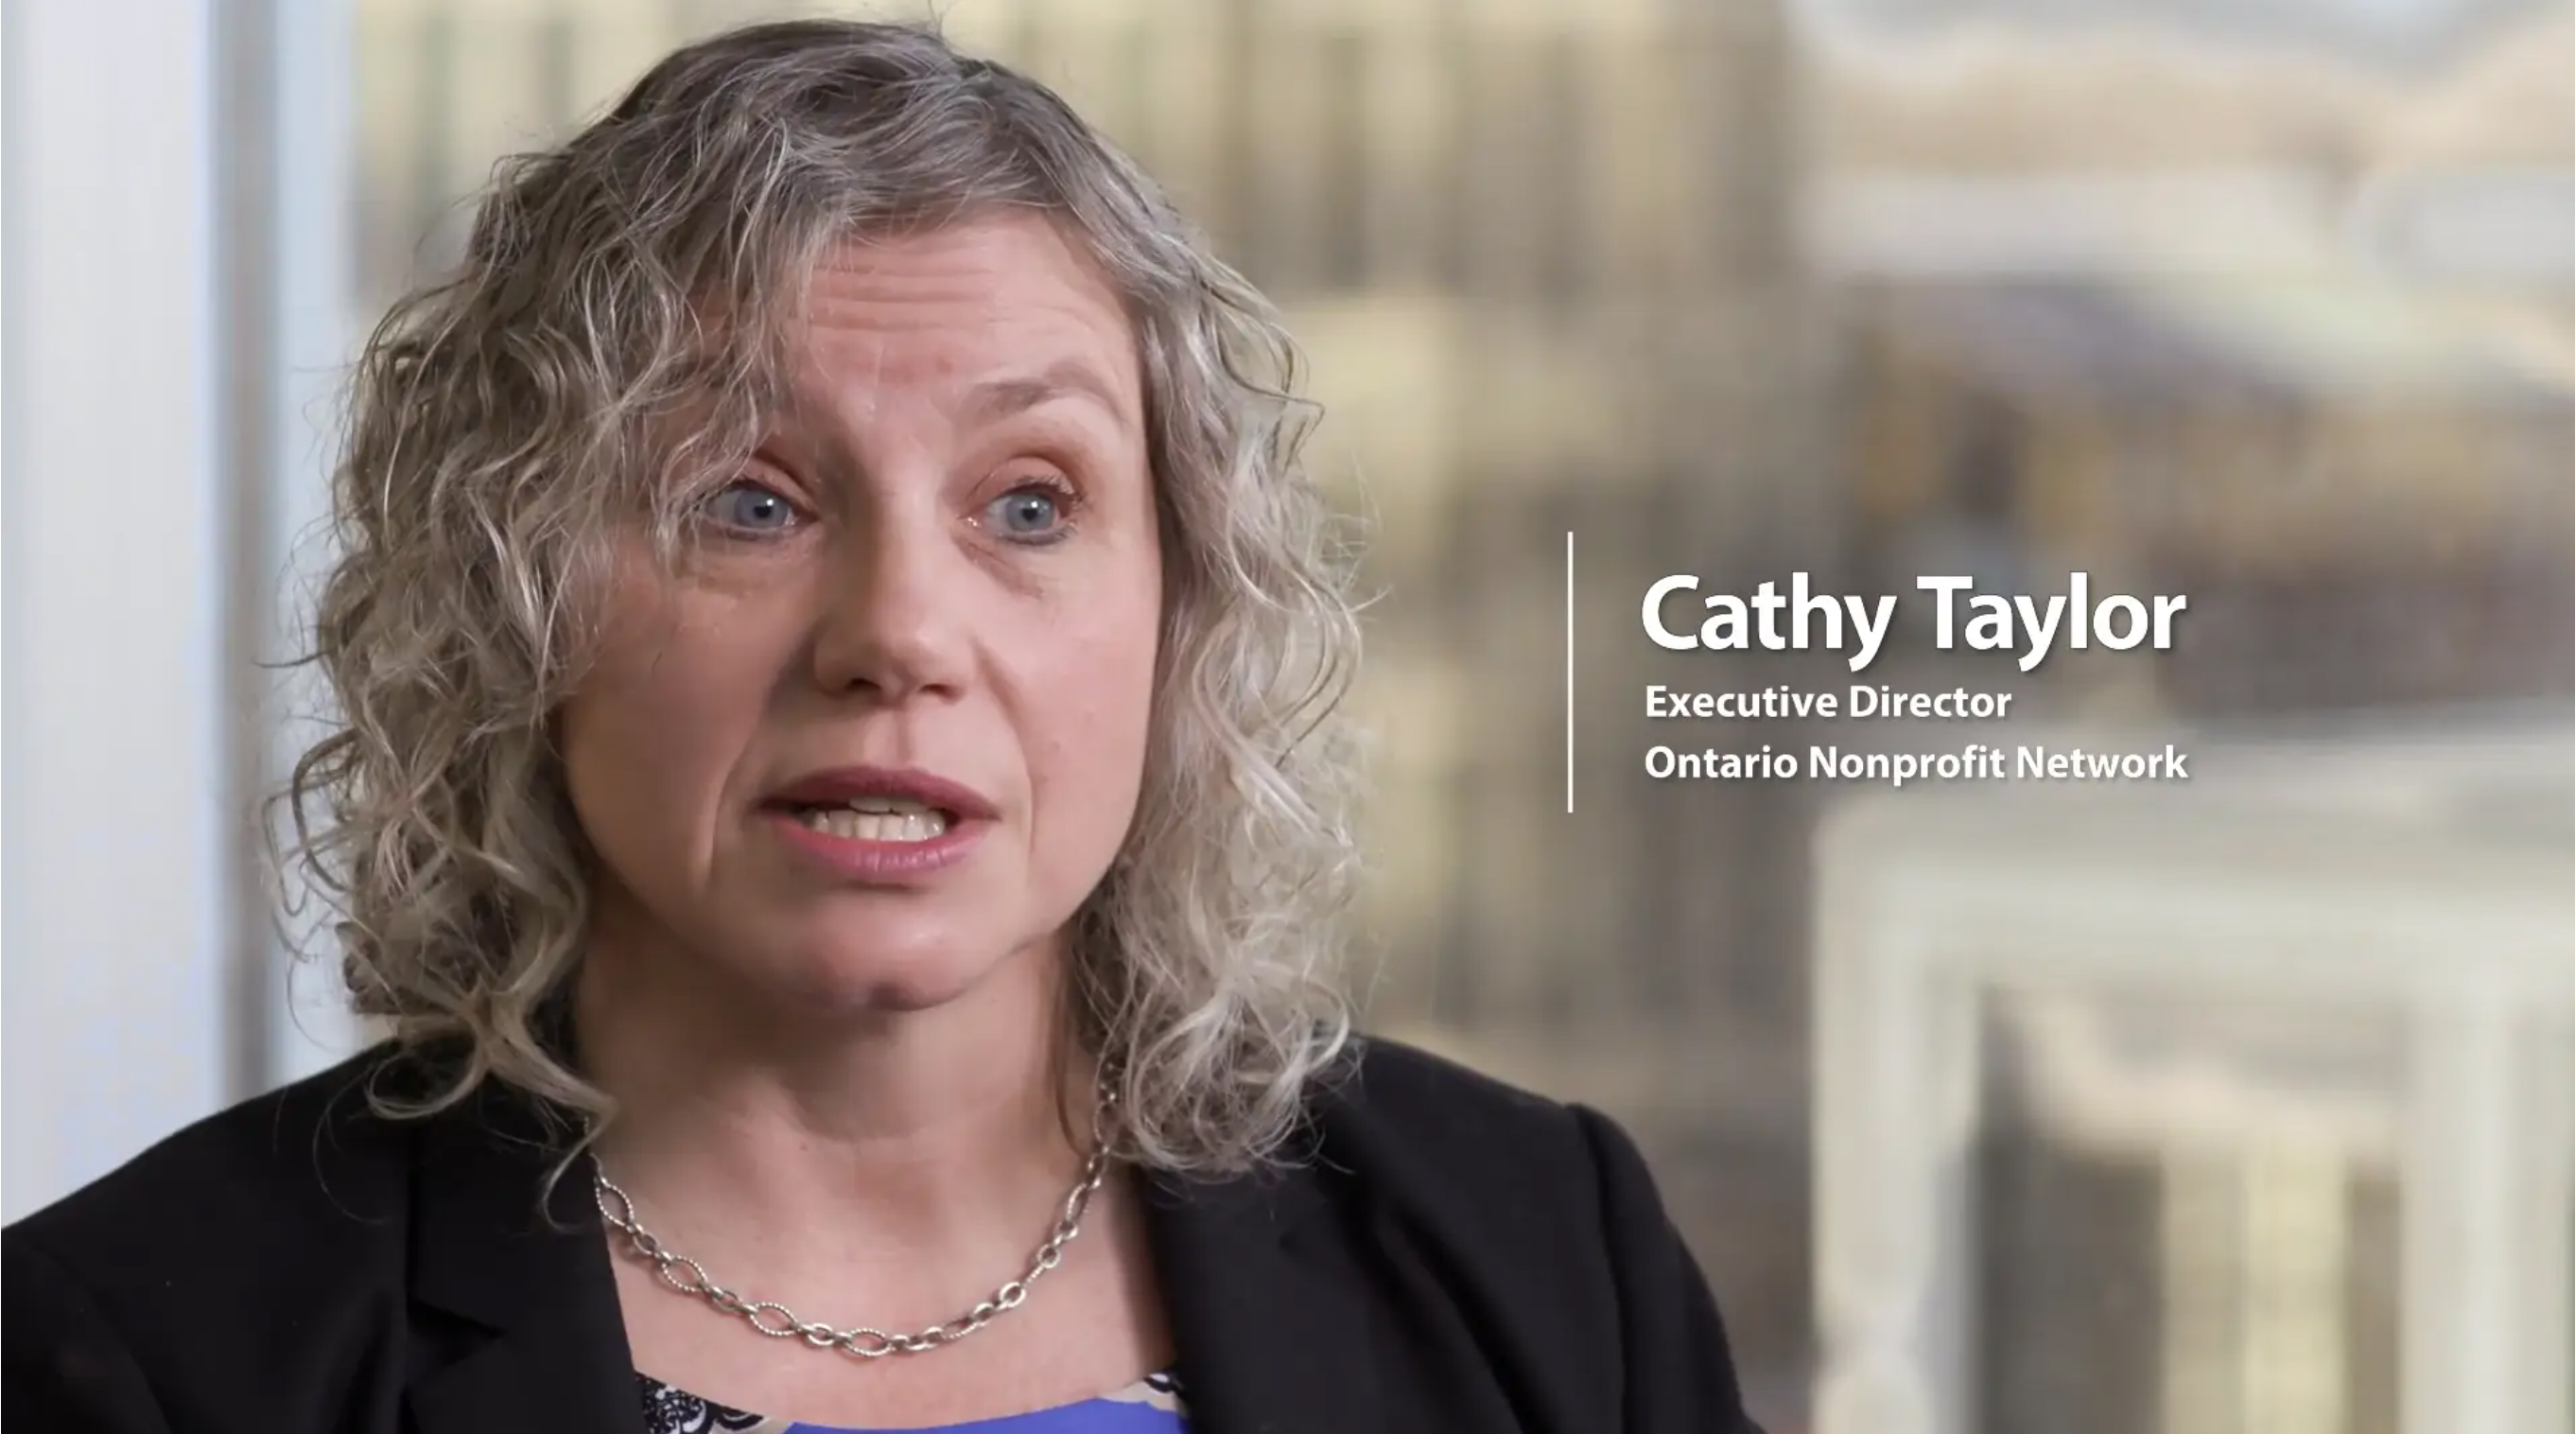 Cathy Taylor, Ontario Nonprofit Network and OPTrust Select